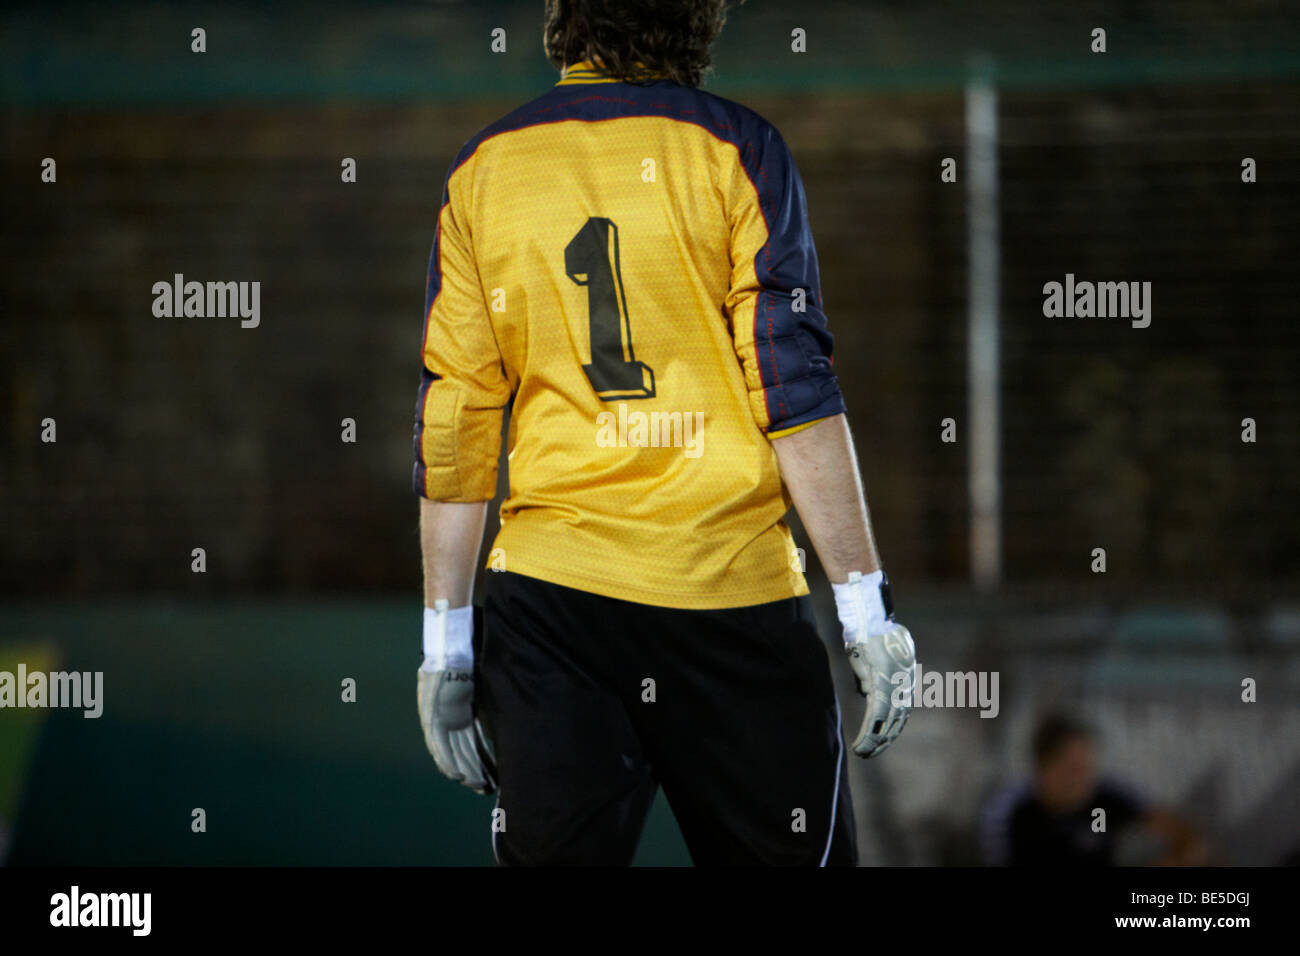 The back of a goalkeeper - Stock Image